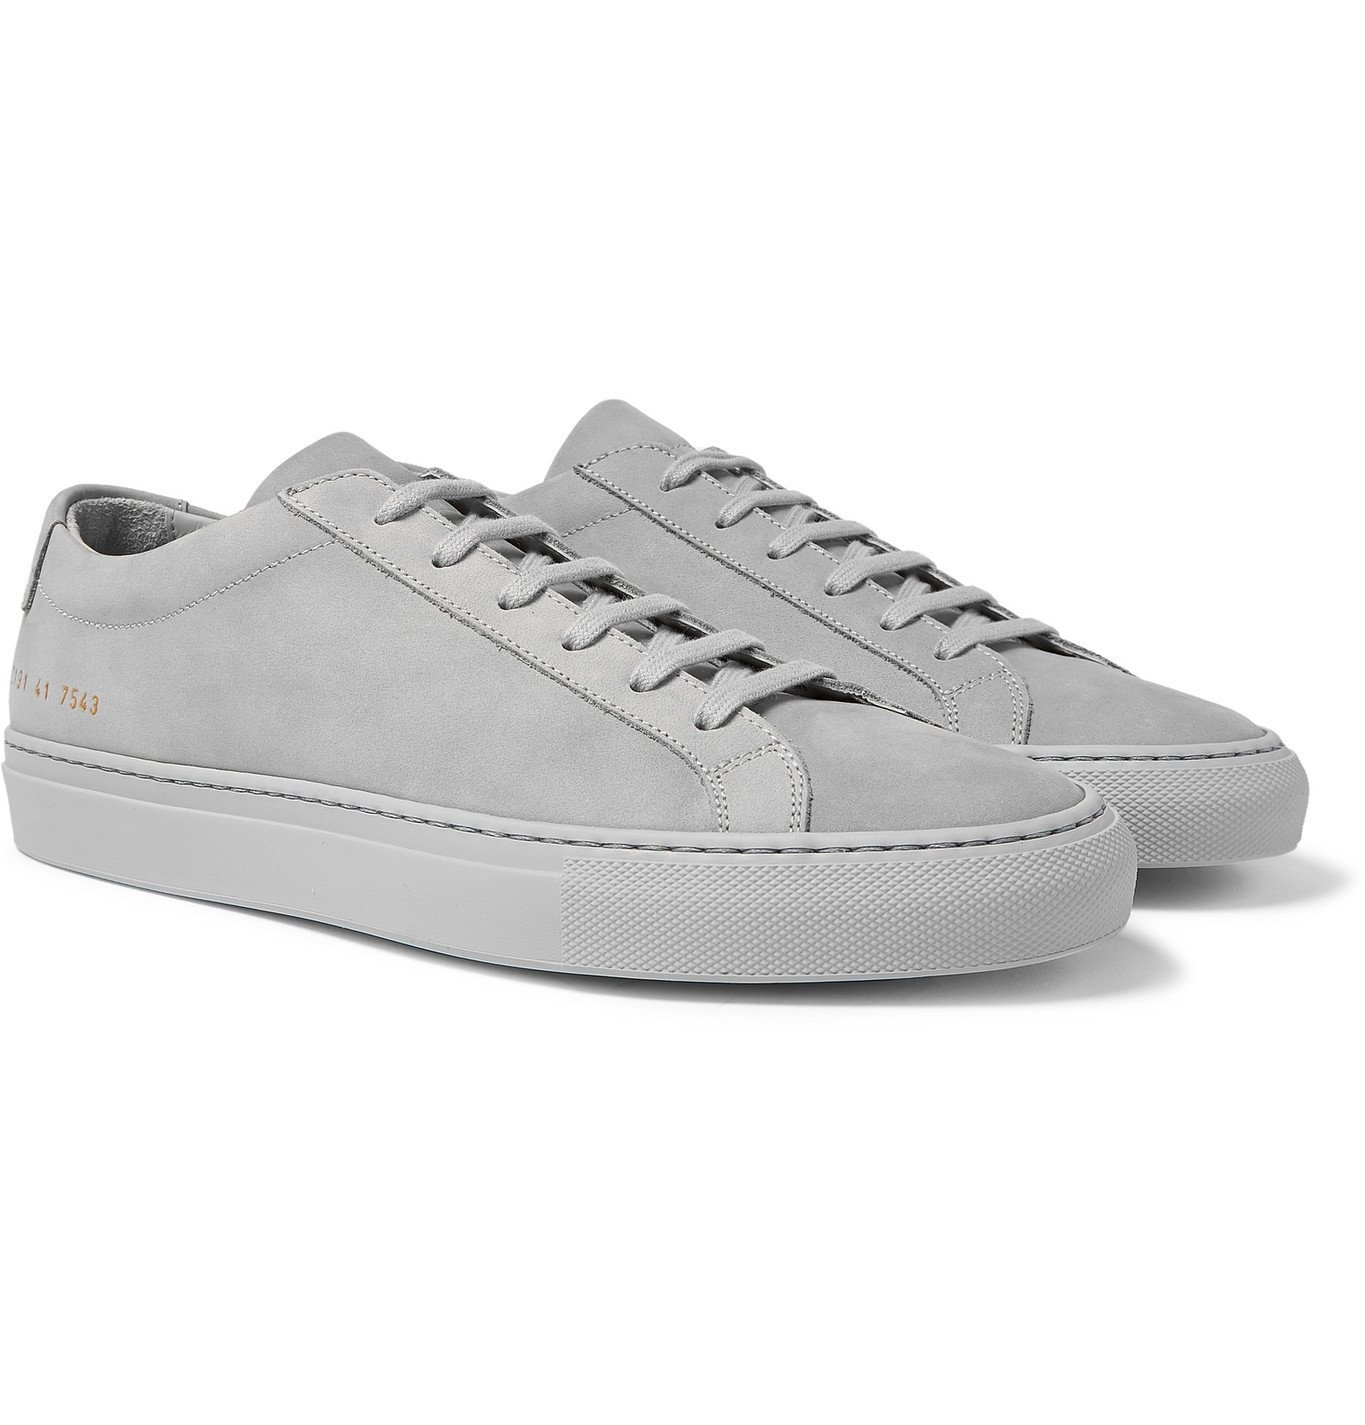 Common Projects - Original Achilles Nubuck Sneakers - Gray